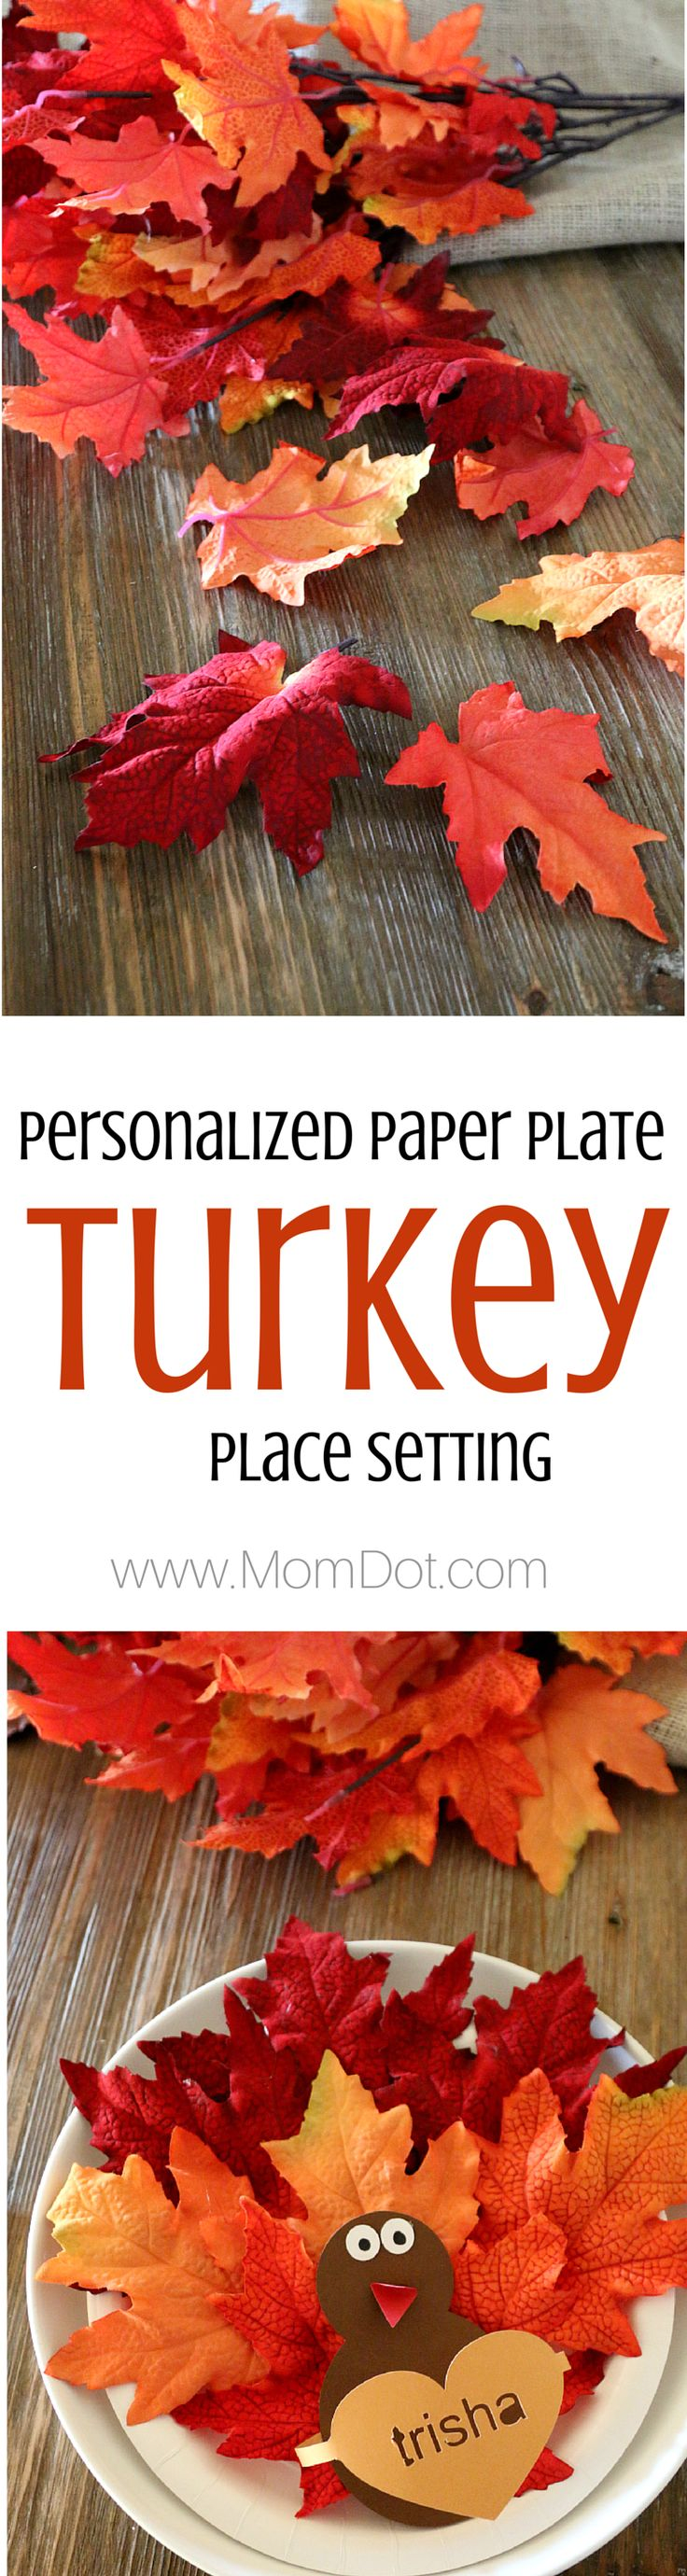 Paper Plate Crafting, Create an adorable Turkey place setting and personalize it for everyone at the Thanksgiving table - Free Printable and do it with or without a Silhouette